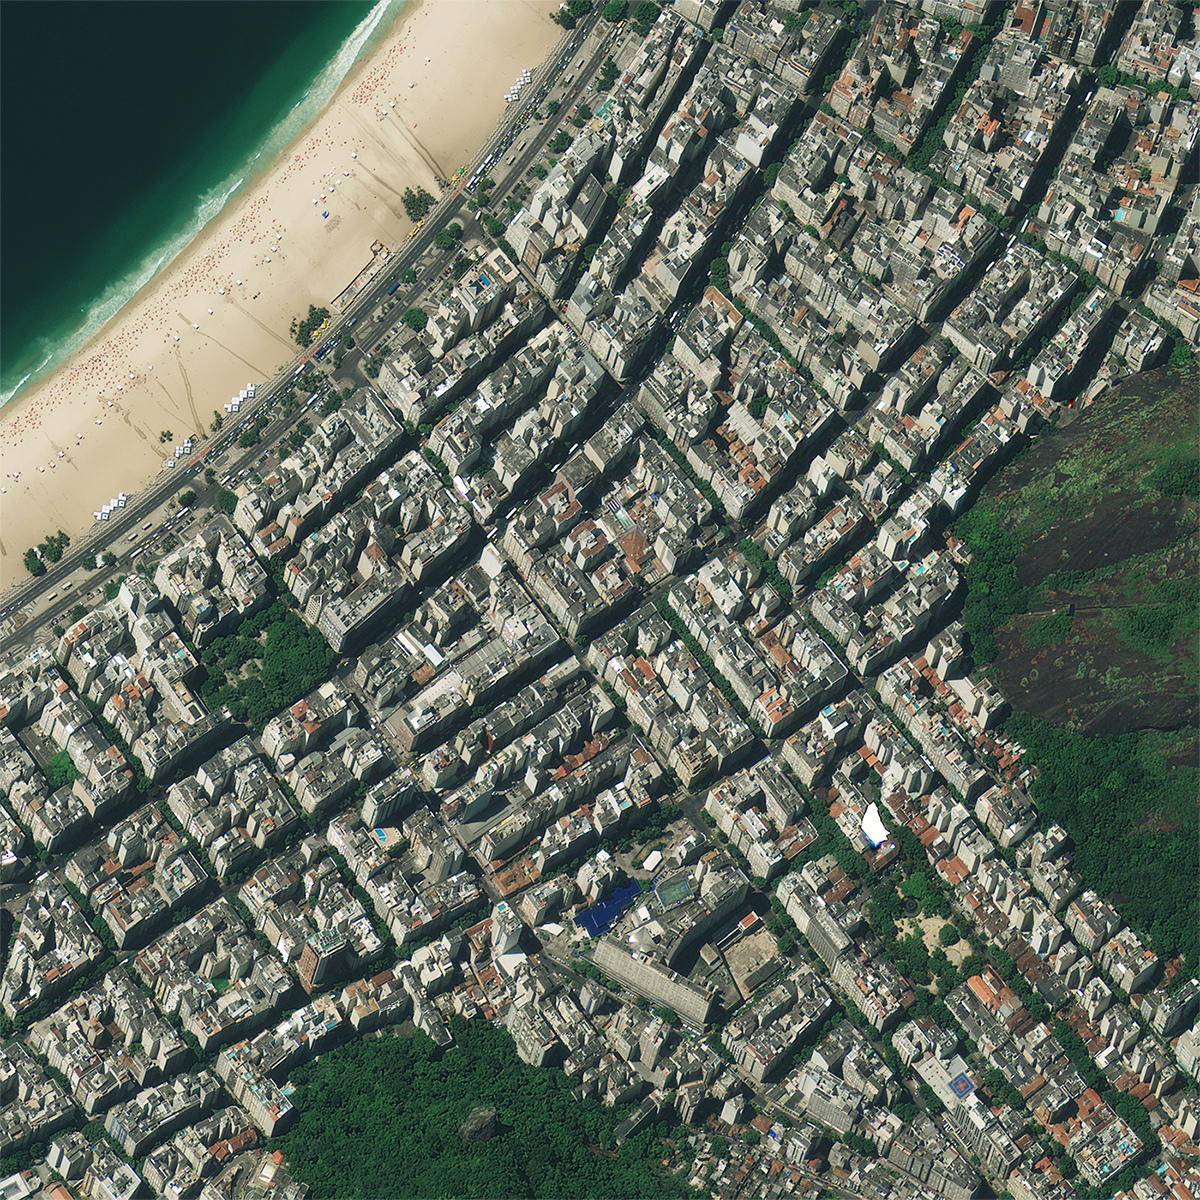 Green infrastructure projects are easily identifiable from satellite data.